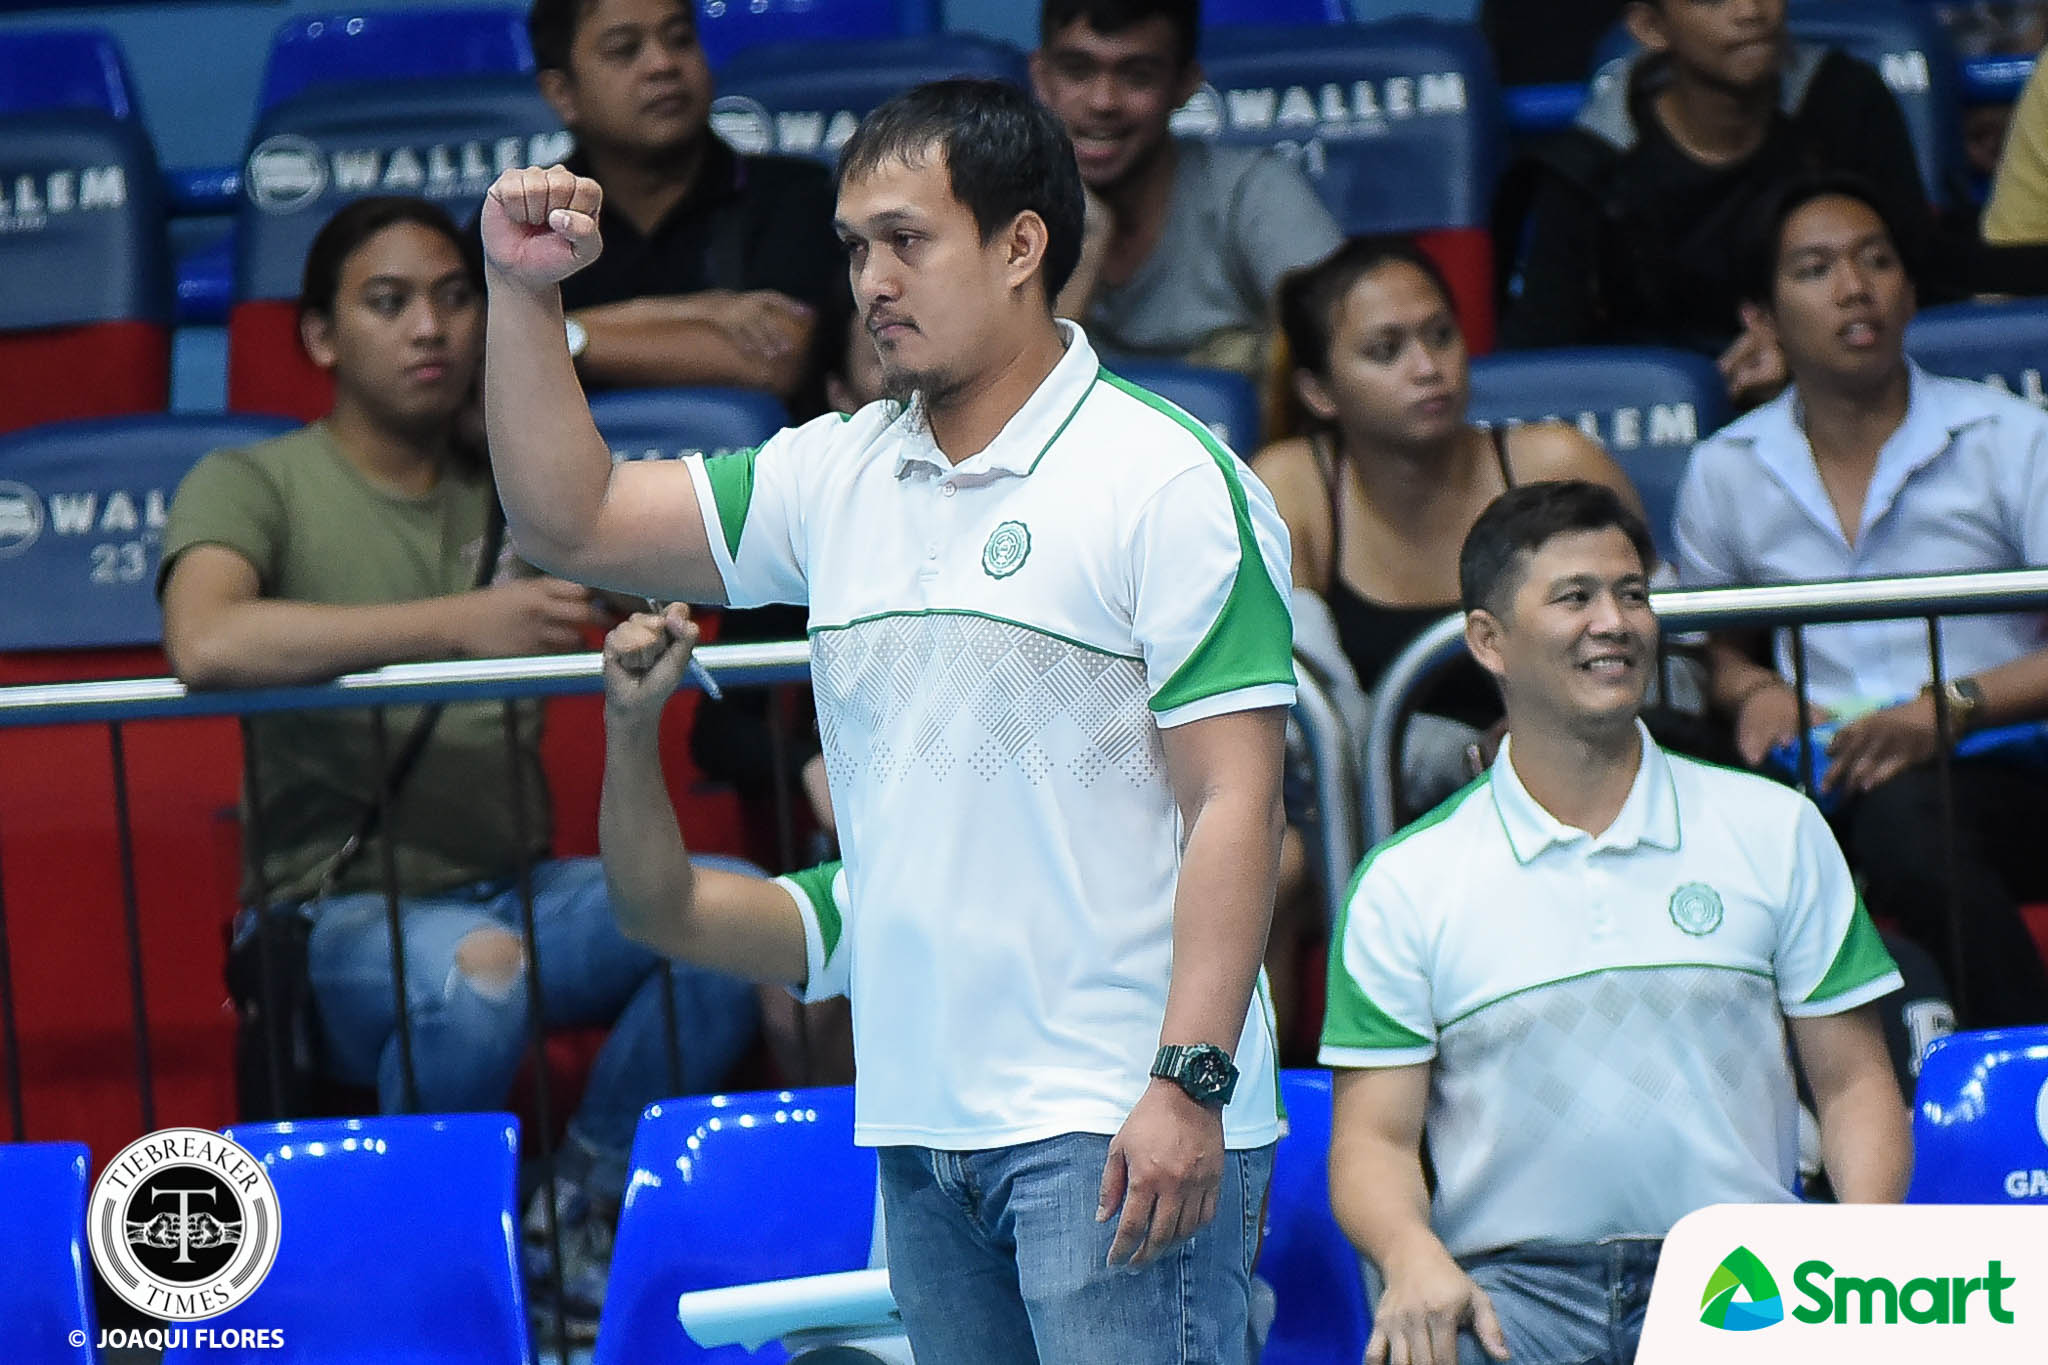 Tiebreaker Times Arnold Laniog named new La Salle Green Spikers head coach DLSU News UAAP Volleyball  UAAP Season 81 Men's Volleyball UAAP Season 81 DLSU Men's Volleyball Arnold Laniog